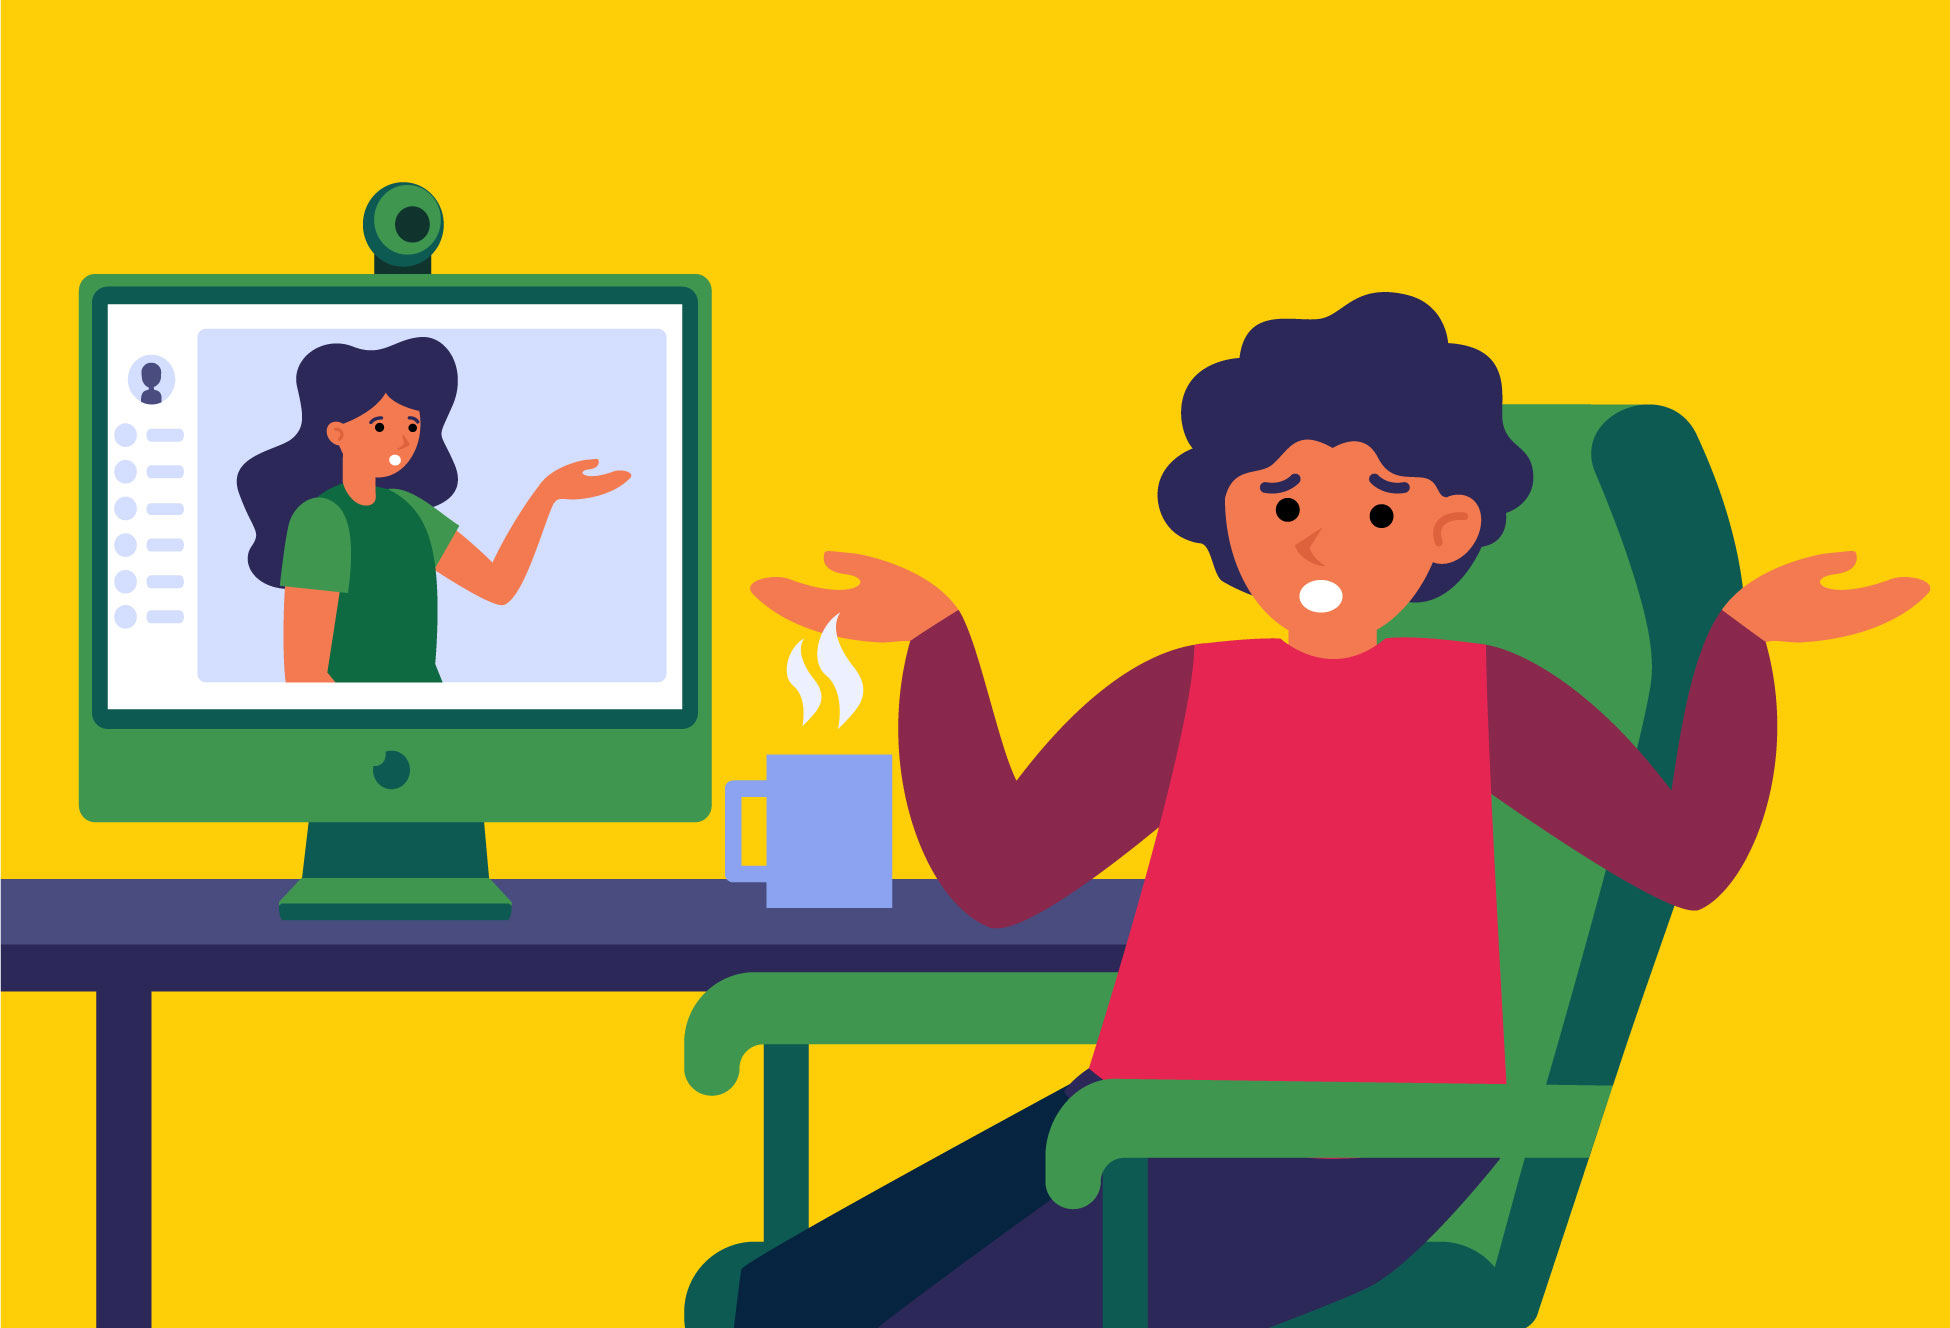 illustration of two people struggling with a video conference call